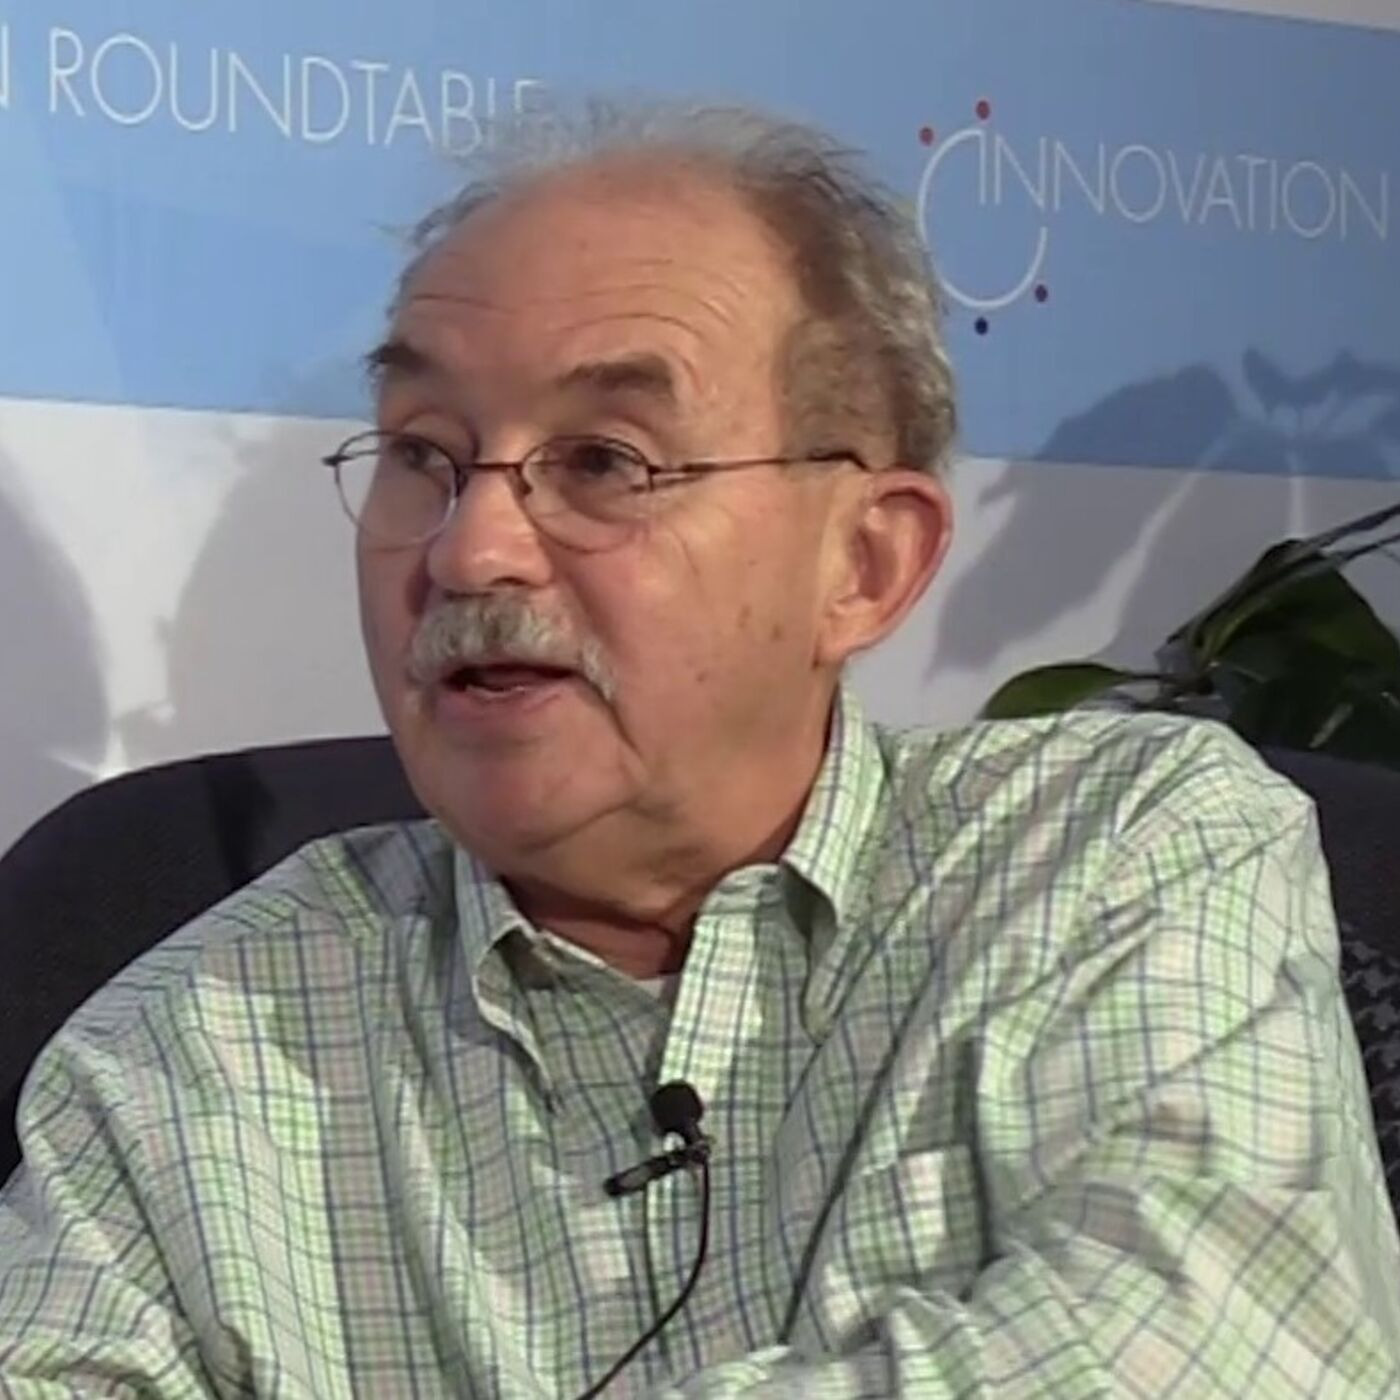 11. Exploring Disruptive Innovation & S-Curve Transitions - Innovation Roundtable Insights